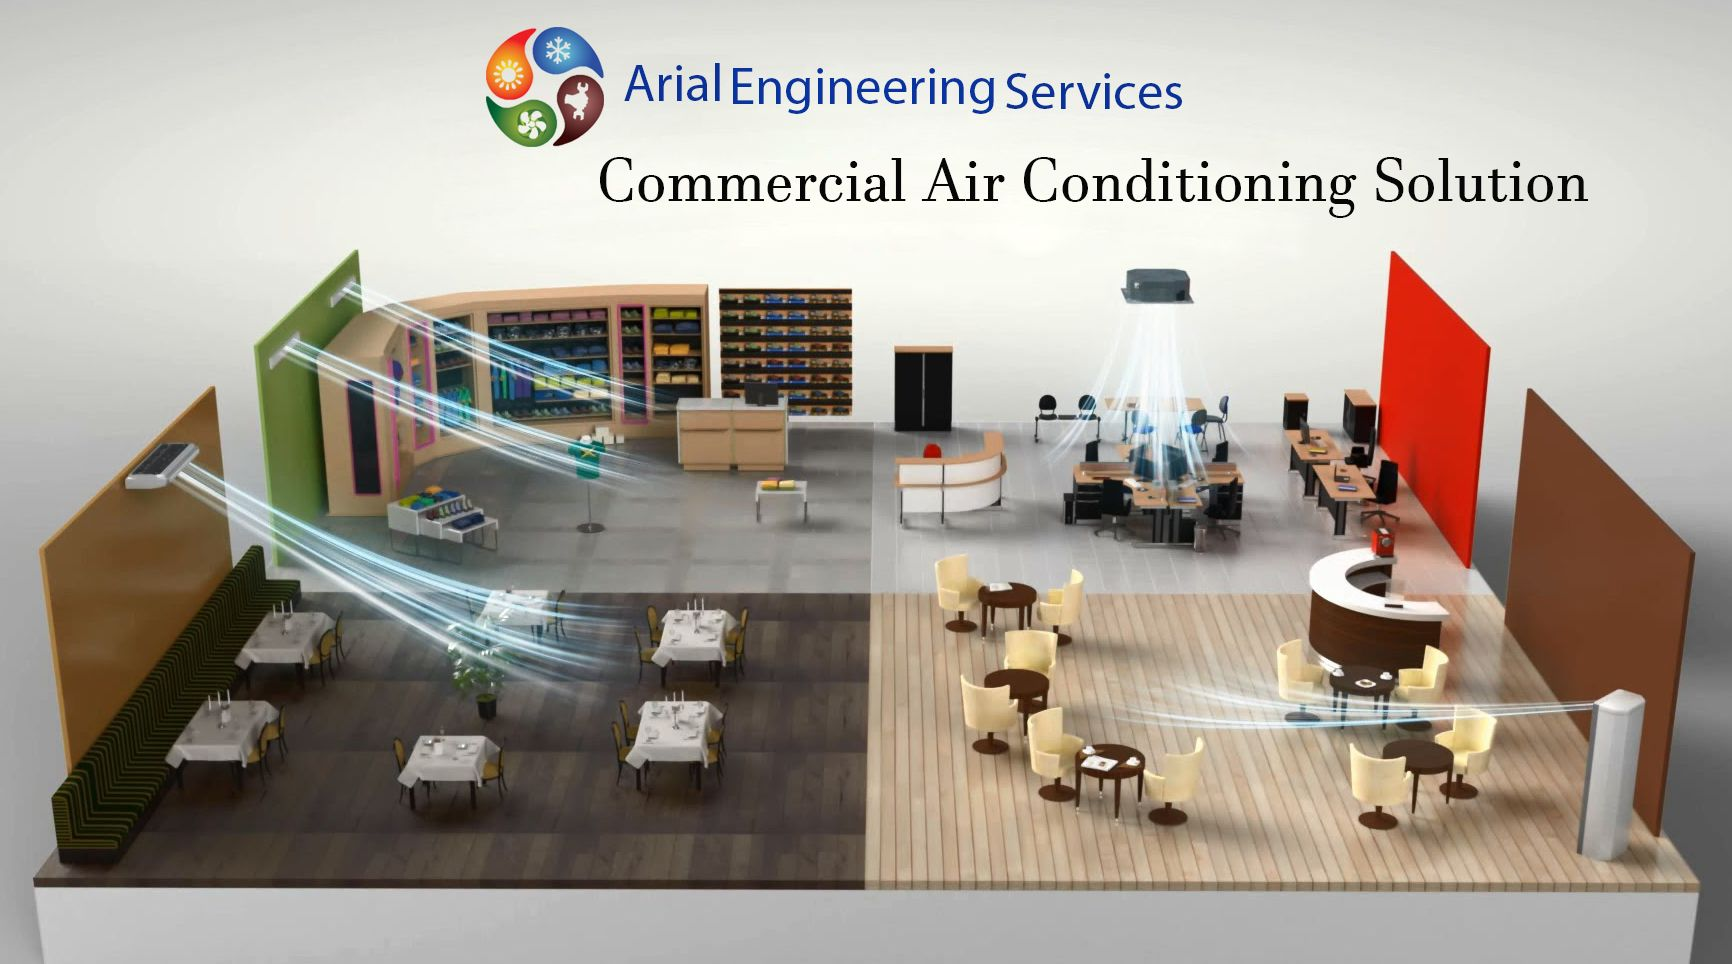 We Offer complete air conditioning solutions for your